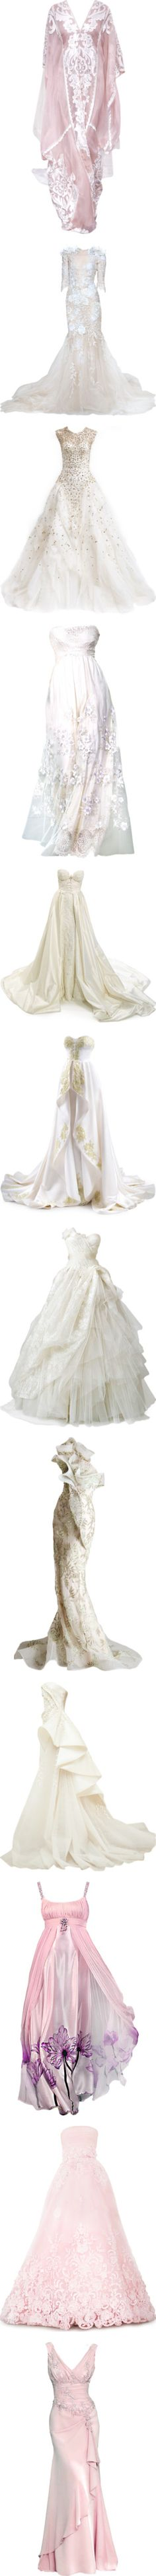 WEDDING by satinee on Polyvore featuring women's fashion, dresses, gowns, doll clothes, long dress, vestidos, pink dress, bridal gowns, bridal ball gowns and long dresses